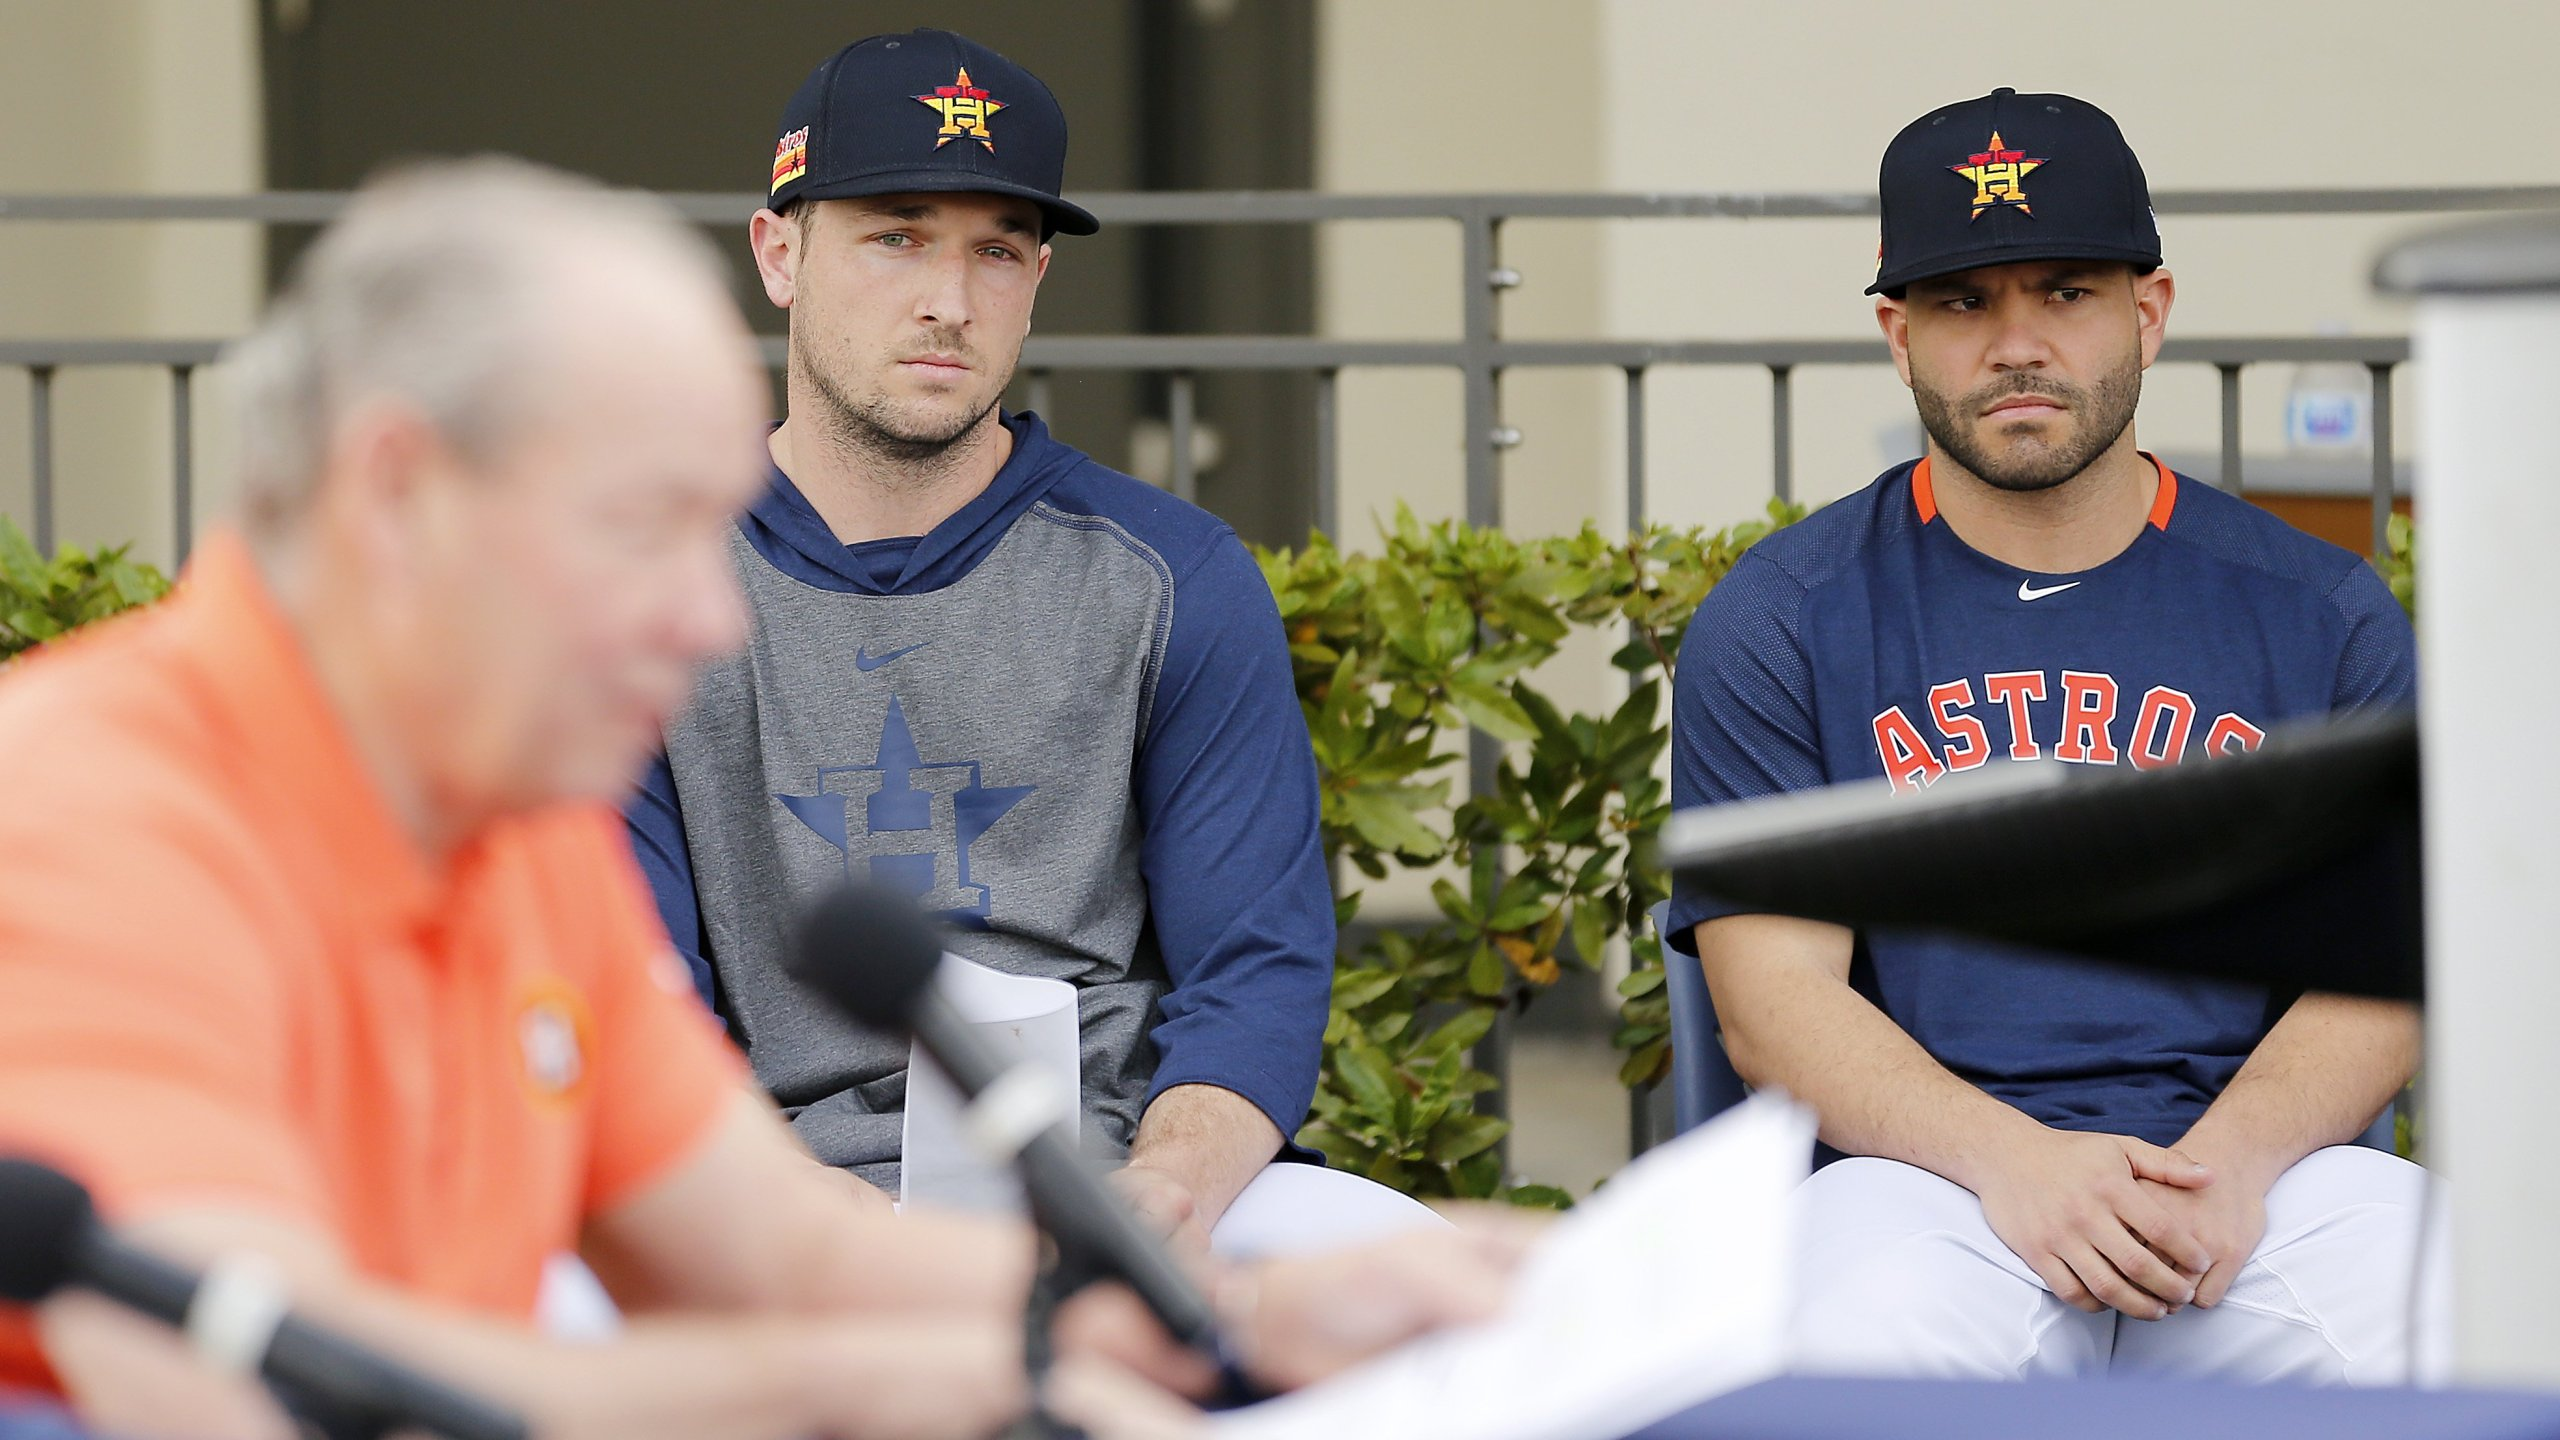 Alex Bregman (left) and Jose Altuve of the Houston Astros look on as owner Jim Crane reads a prepared statement during a press conference on February 13, 2020 in West Palm Beach, Florida. (Credit: Michael Reaves/Getty Images)